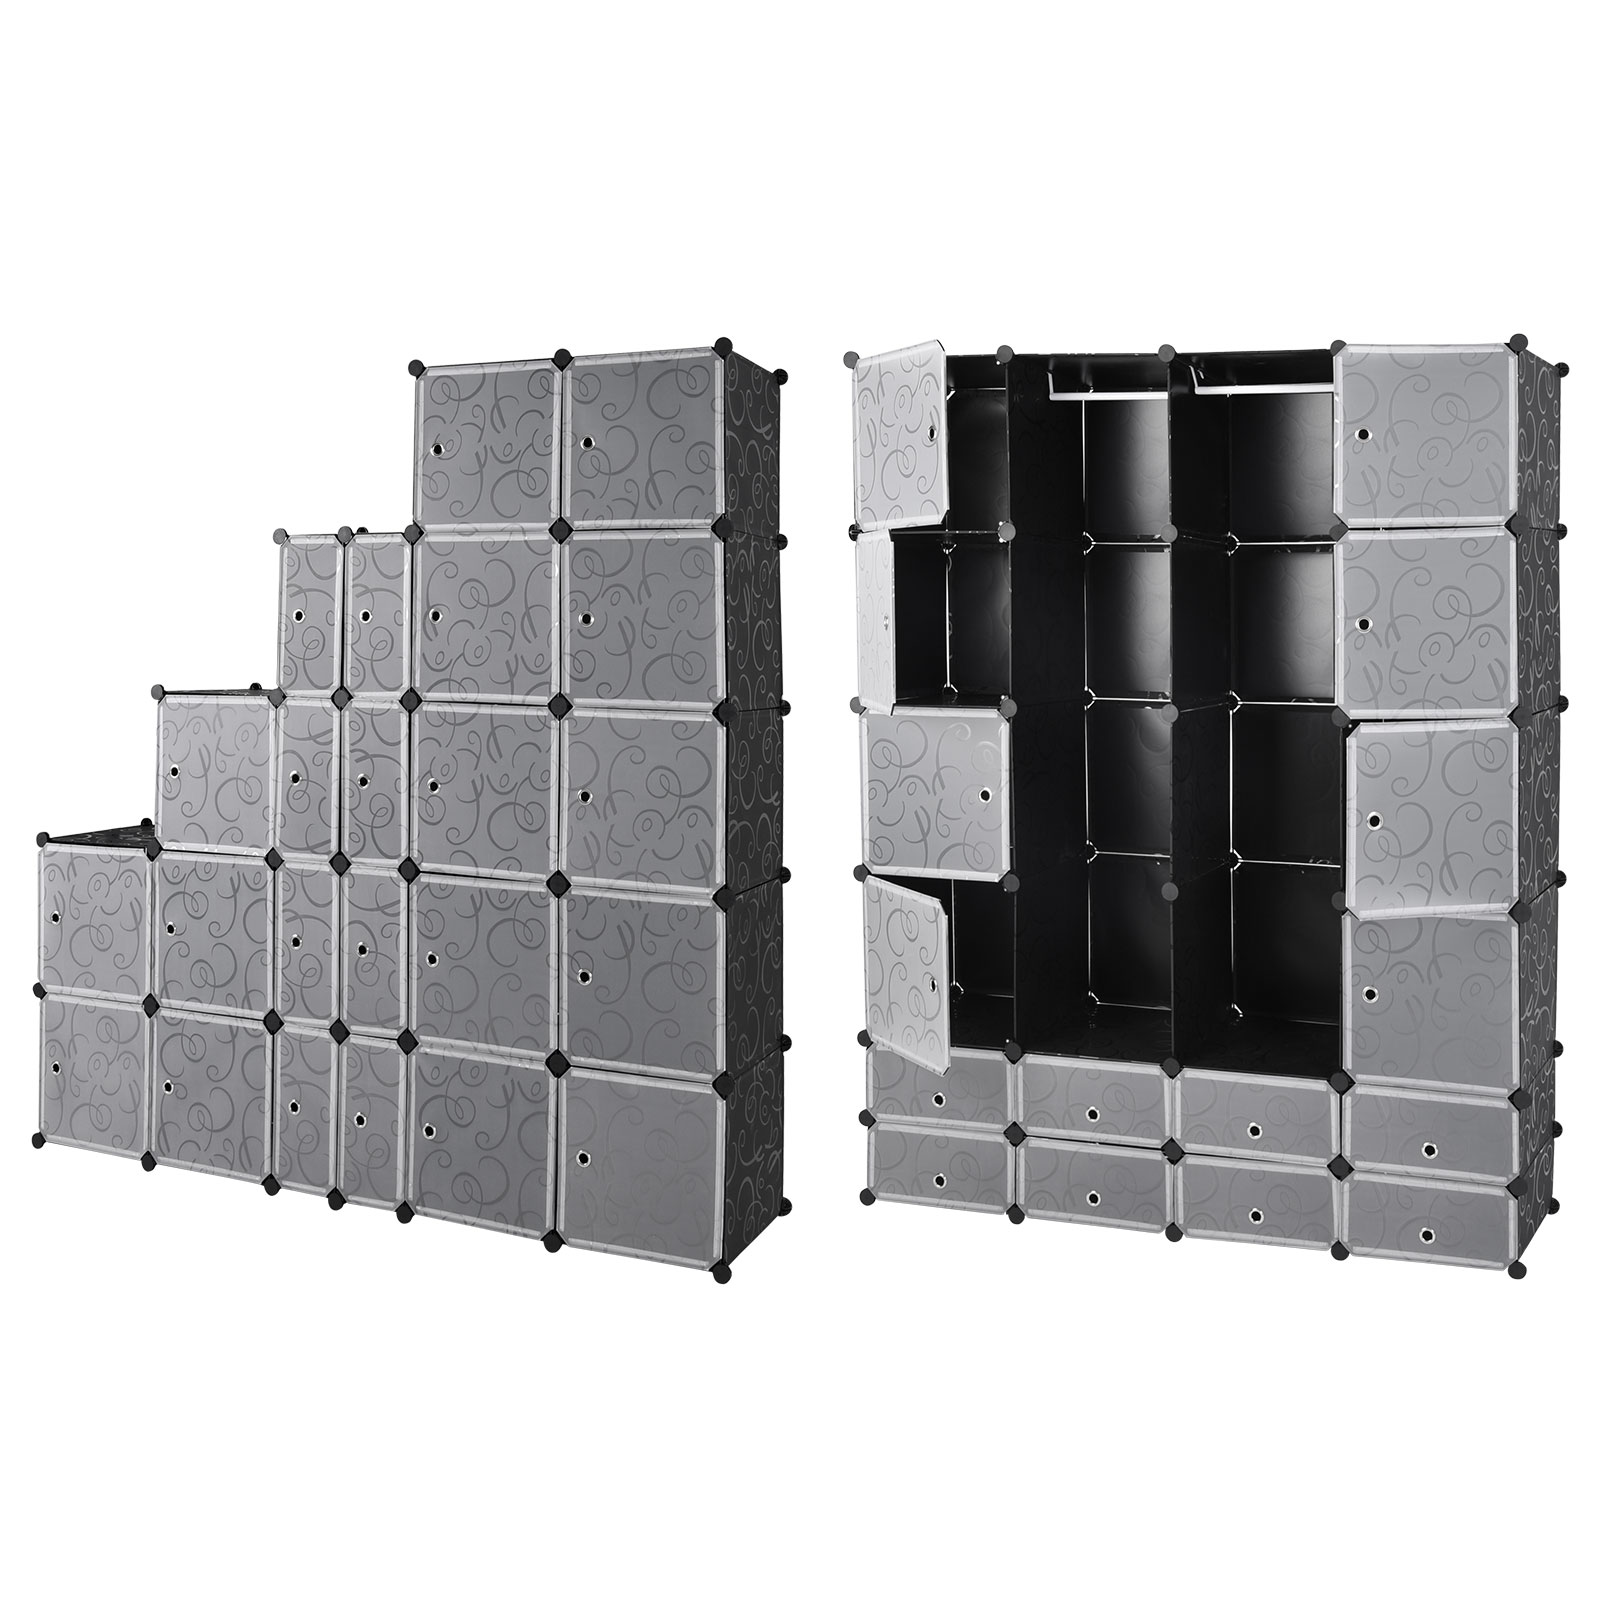 armoire tag re modulable en plastique noir 16 casiers. Black Bedroom Furniture Sets. Home Design Ideas